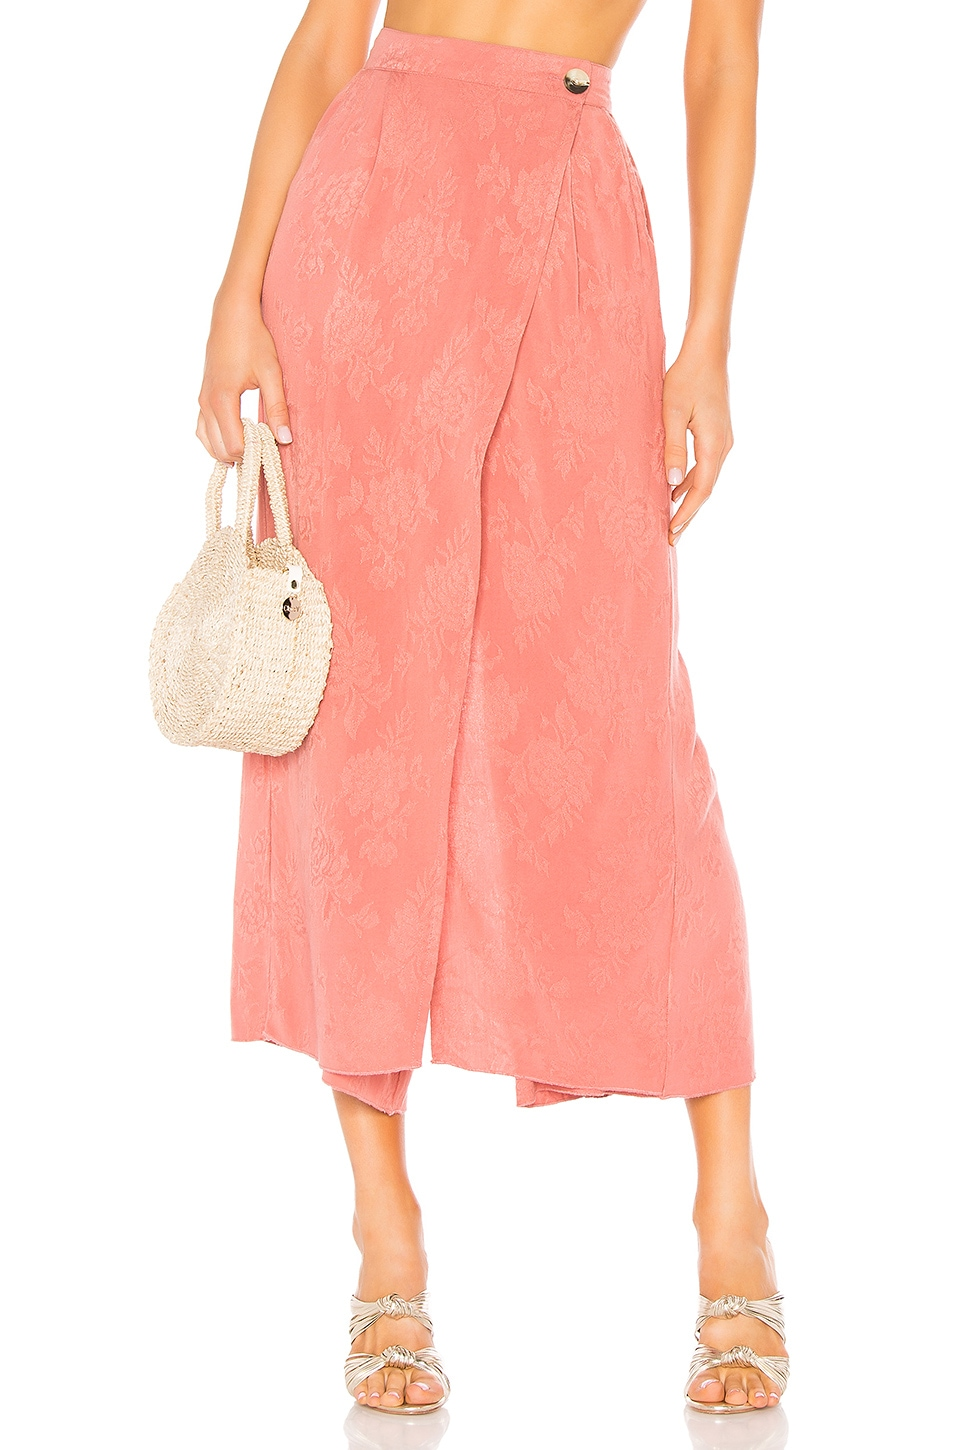 Tularosa Banae Pant in Dusty Rose